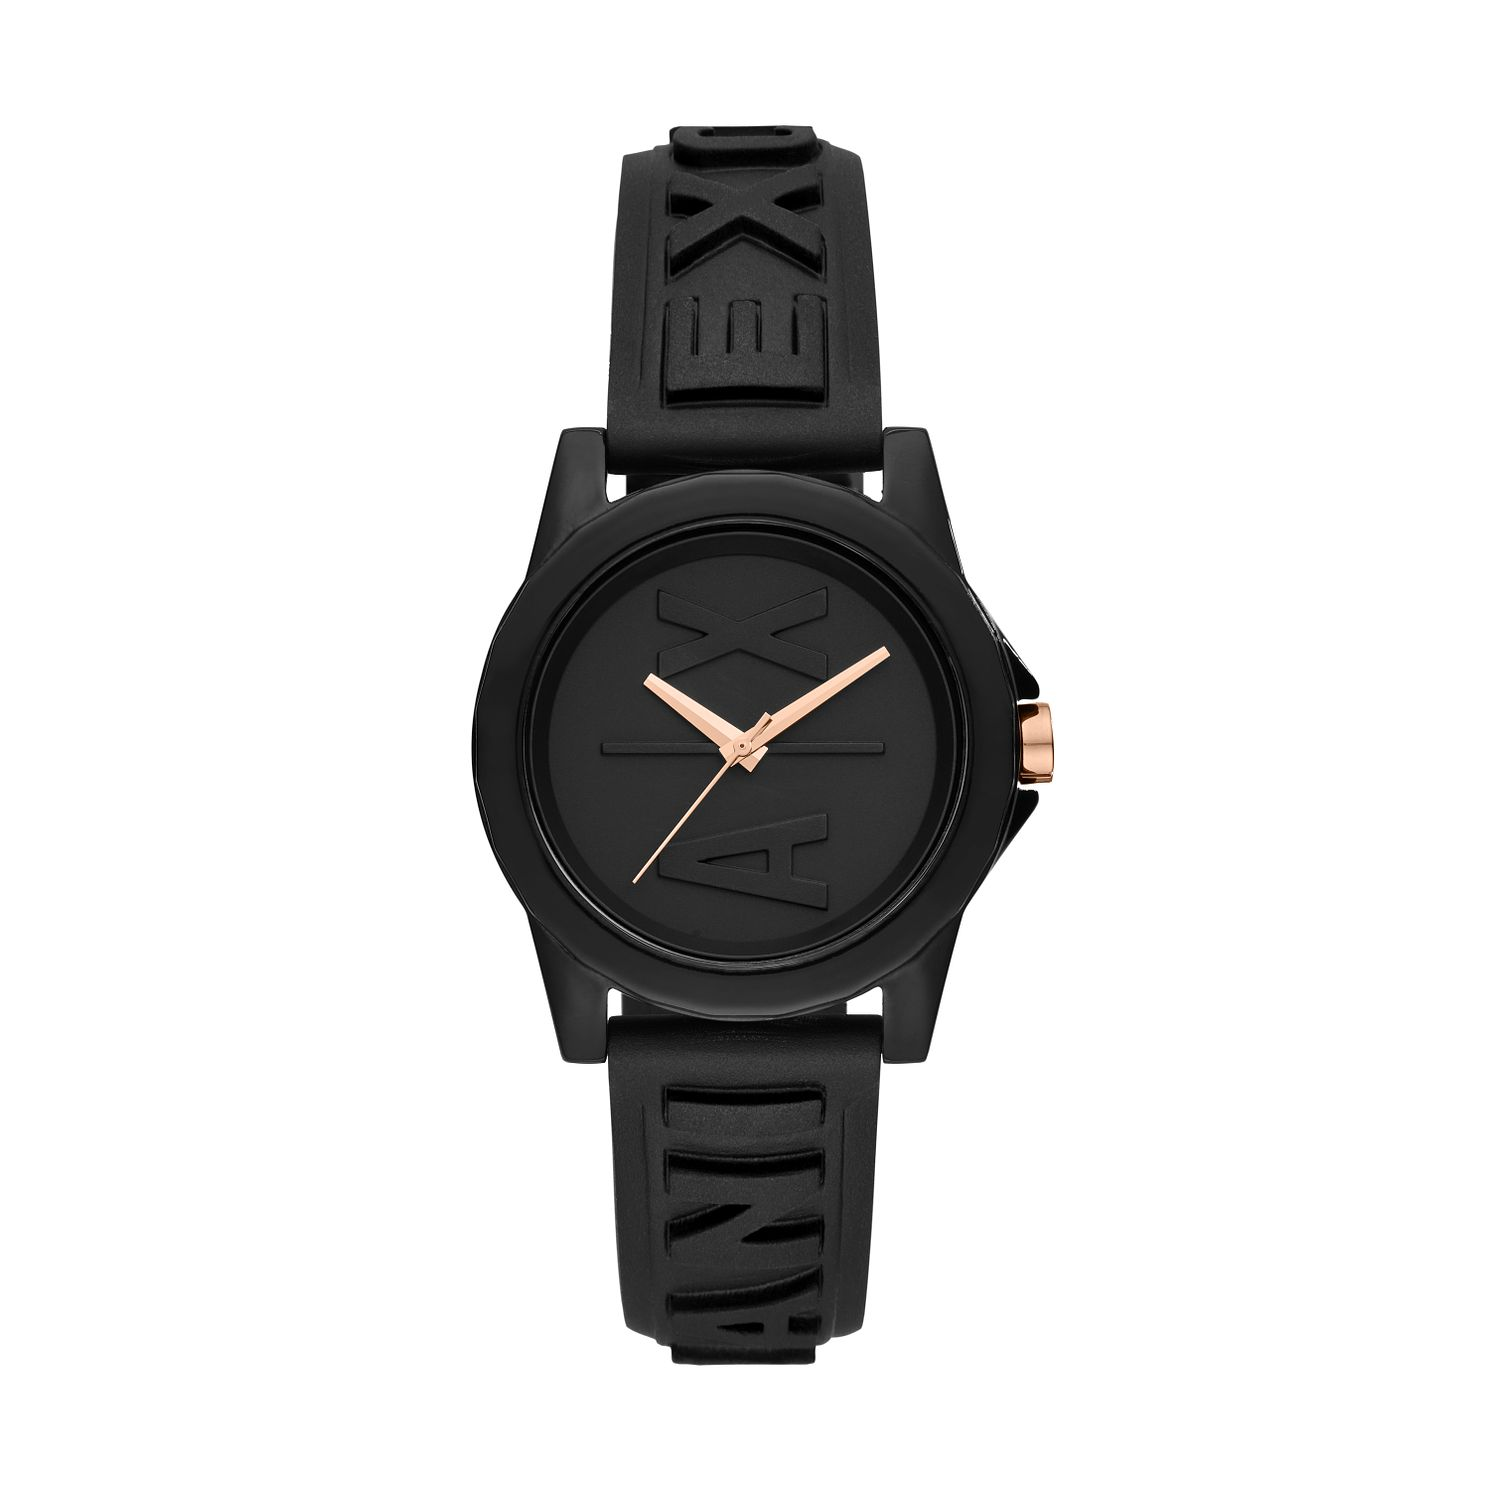 Armani Exchange Black Silicone Strap Watch - Product number 5326672